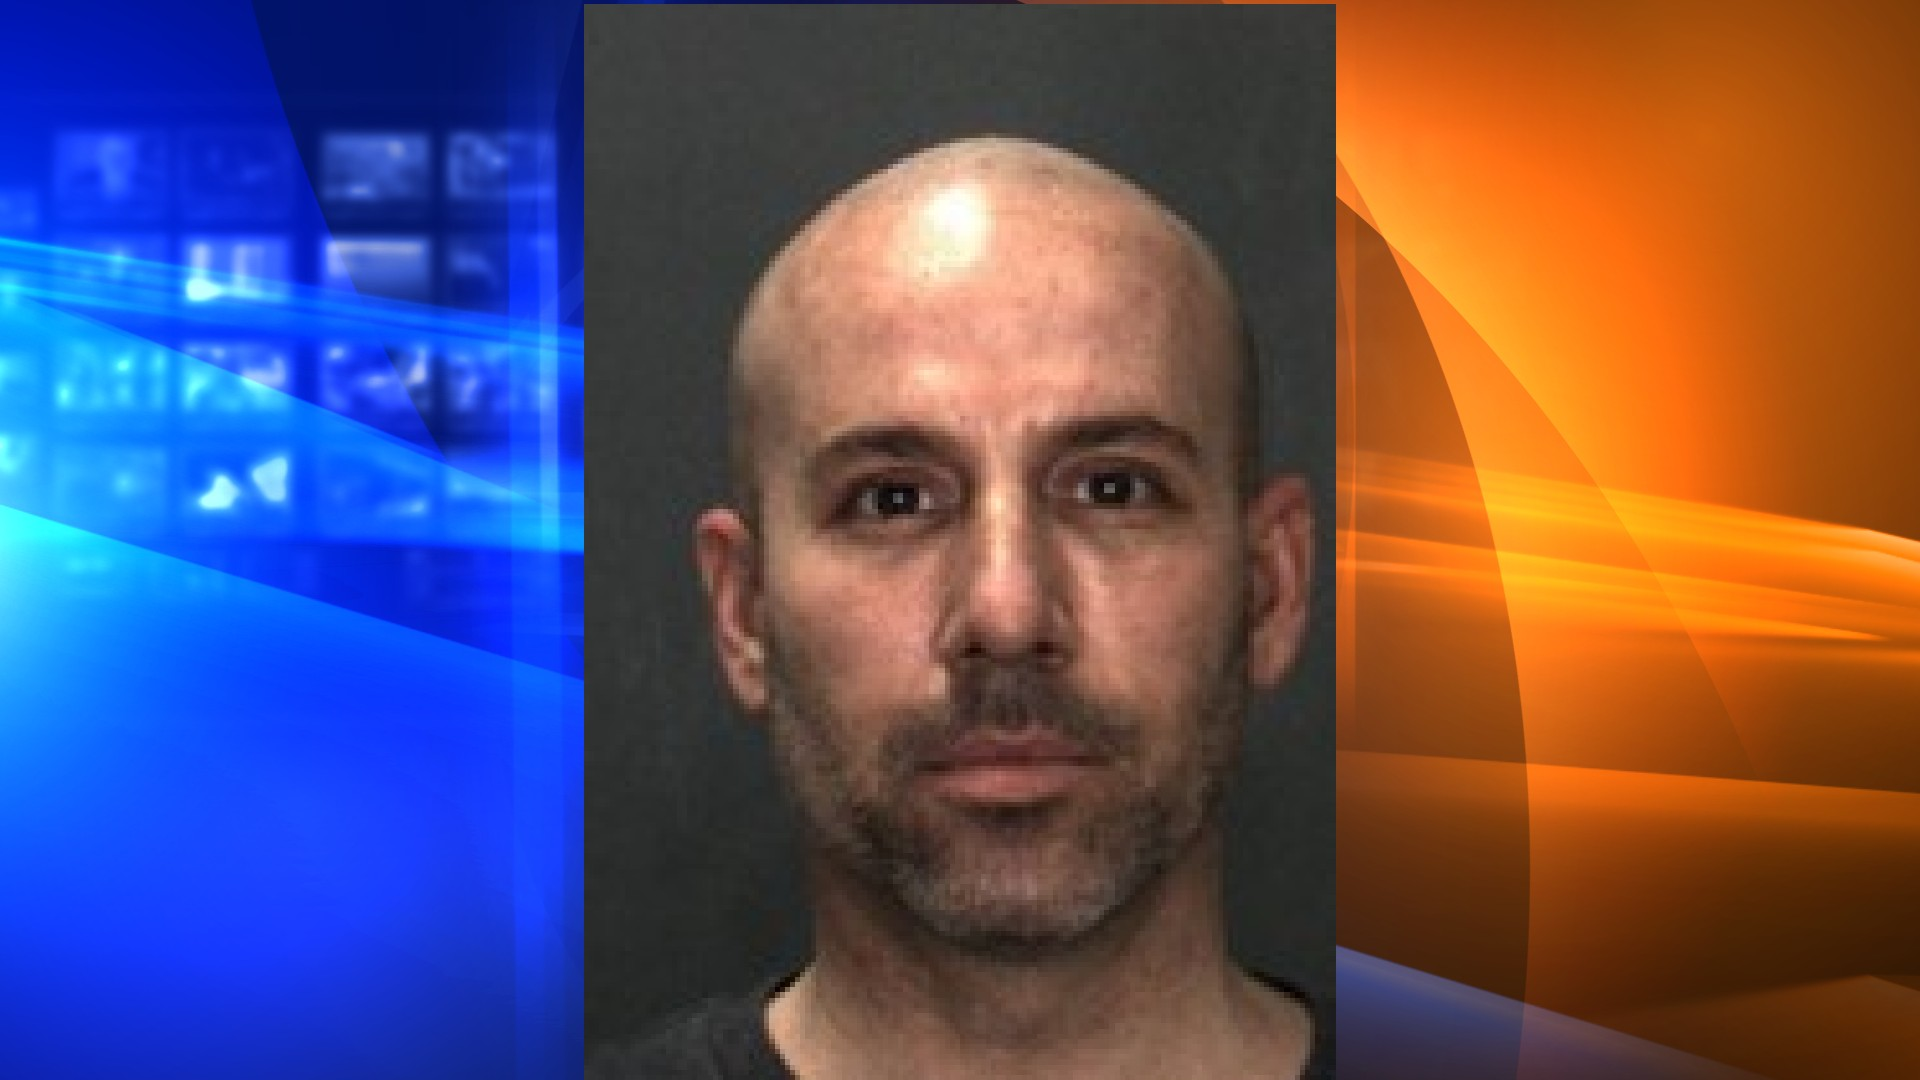 Ryan Rickett, 42, was arrested on suspicion of soliciting sexual acts with a minor in Rancho Cucamonga. (Rancho Cucamonga Police Department)